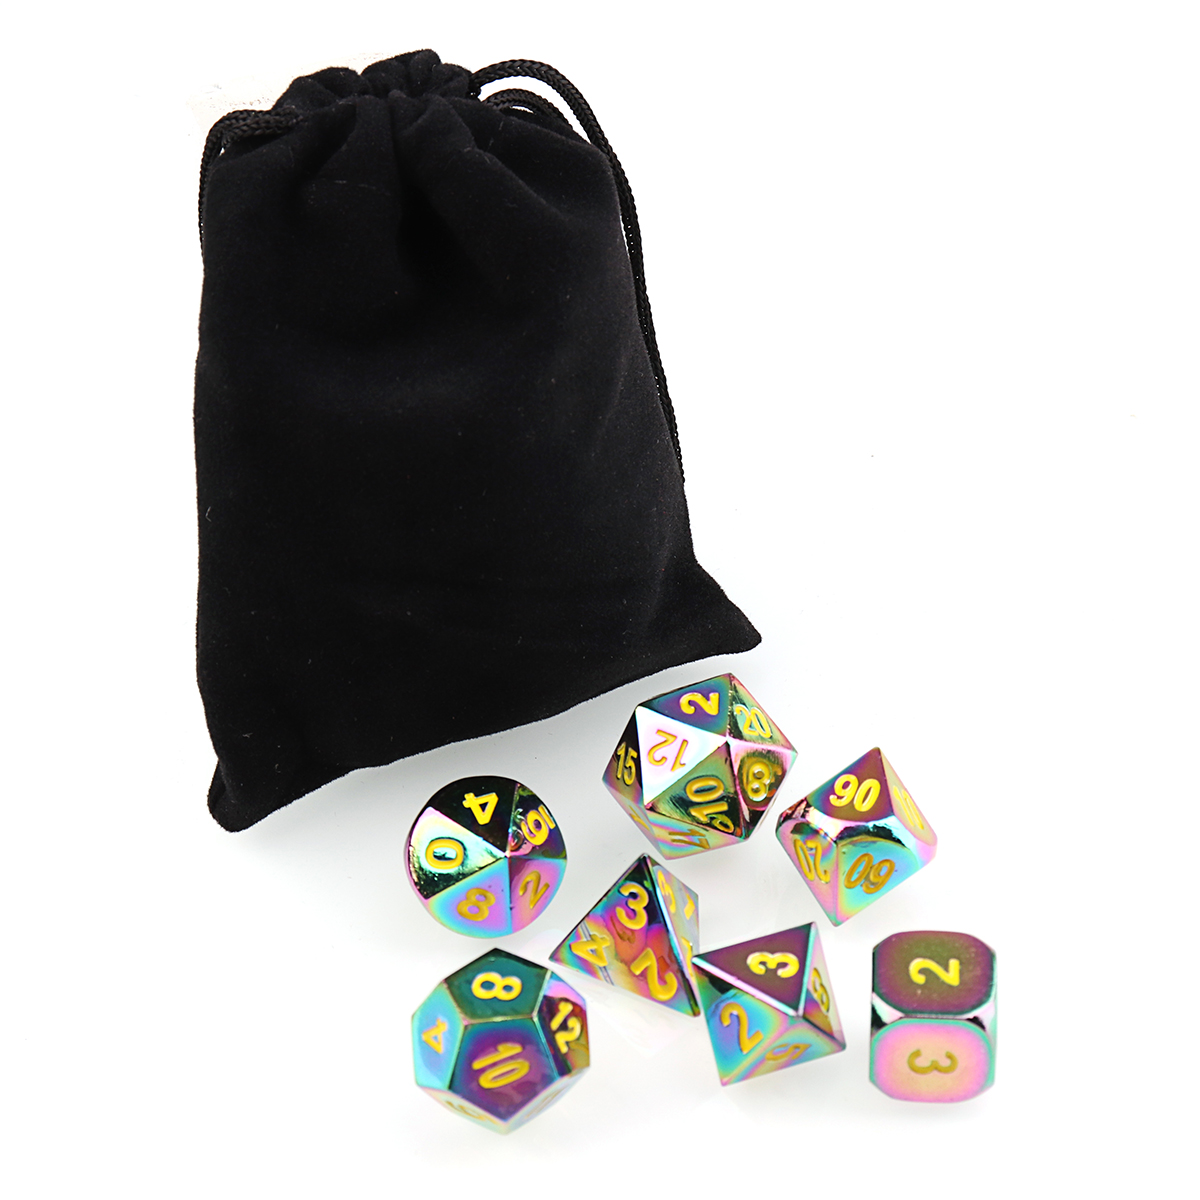 7Pcs Embossed Heavy Metal Polyhedral Dice DND RPG MTG Role Playing Game with Bag